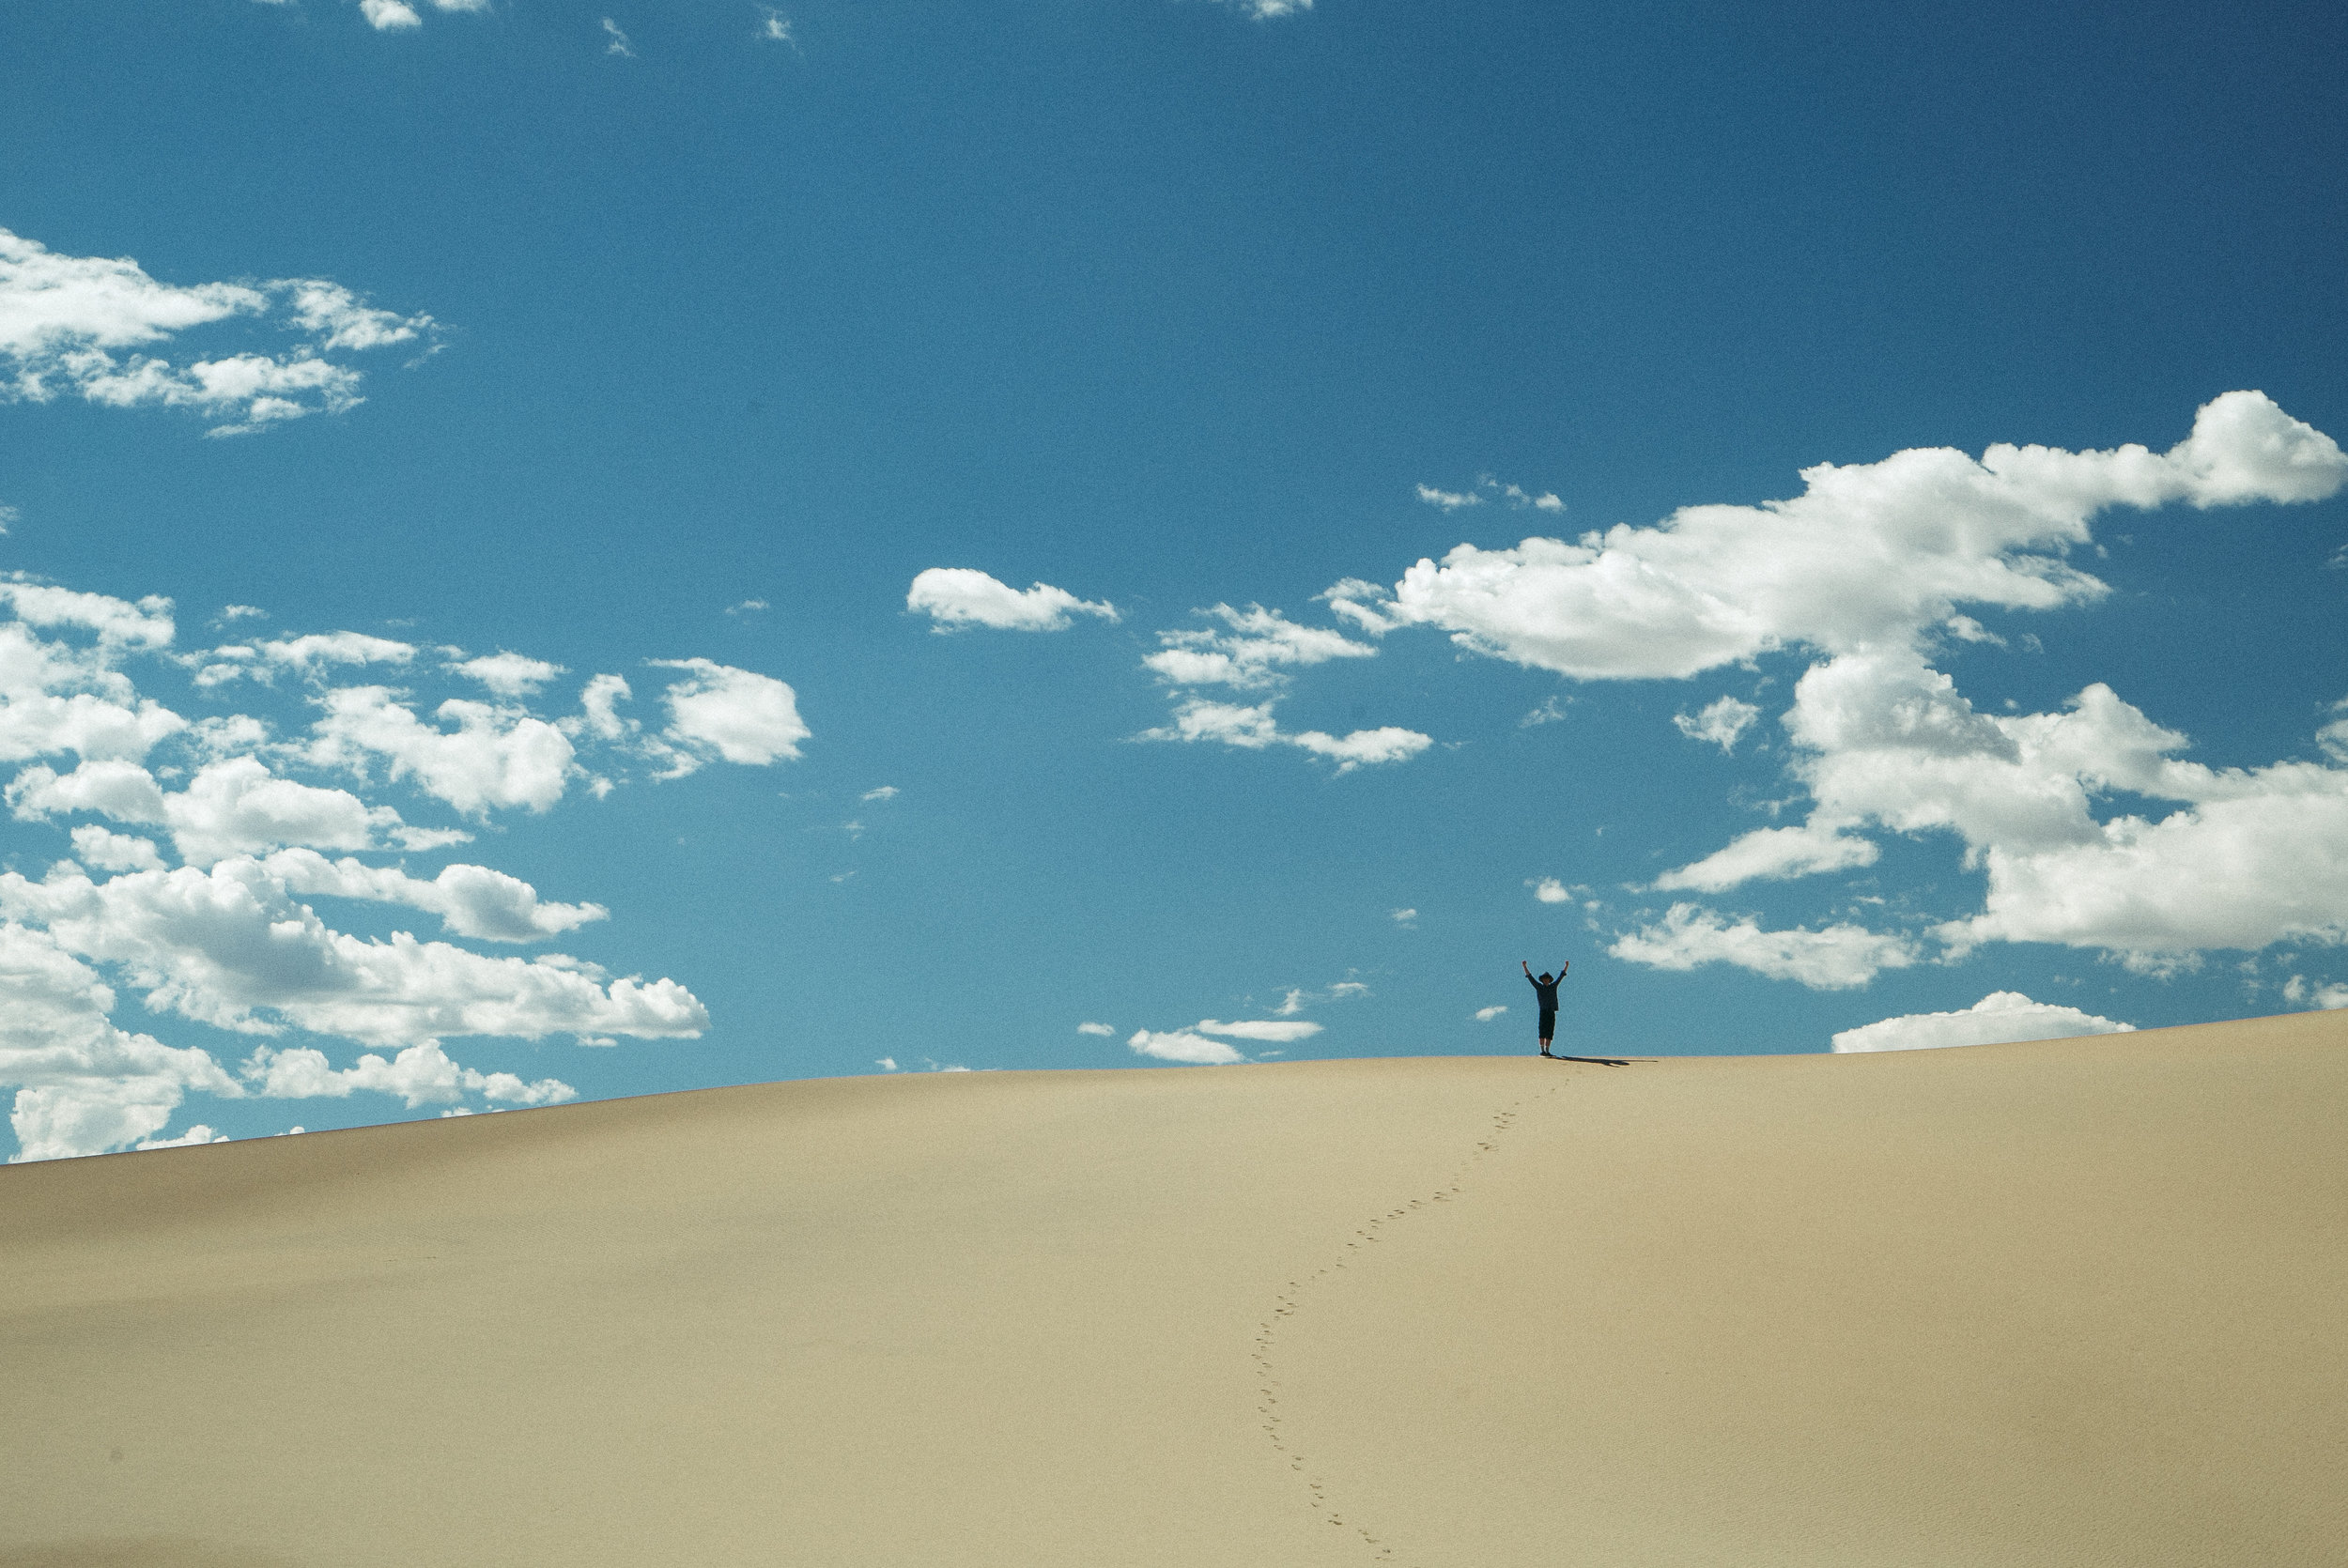 dunes - longtracks-LIGHTclean.jpg